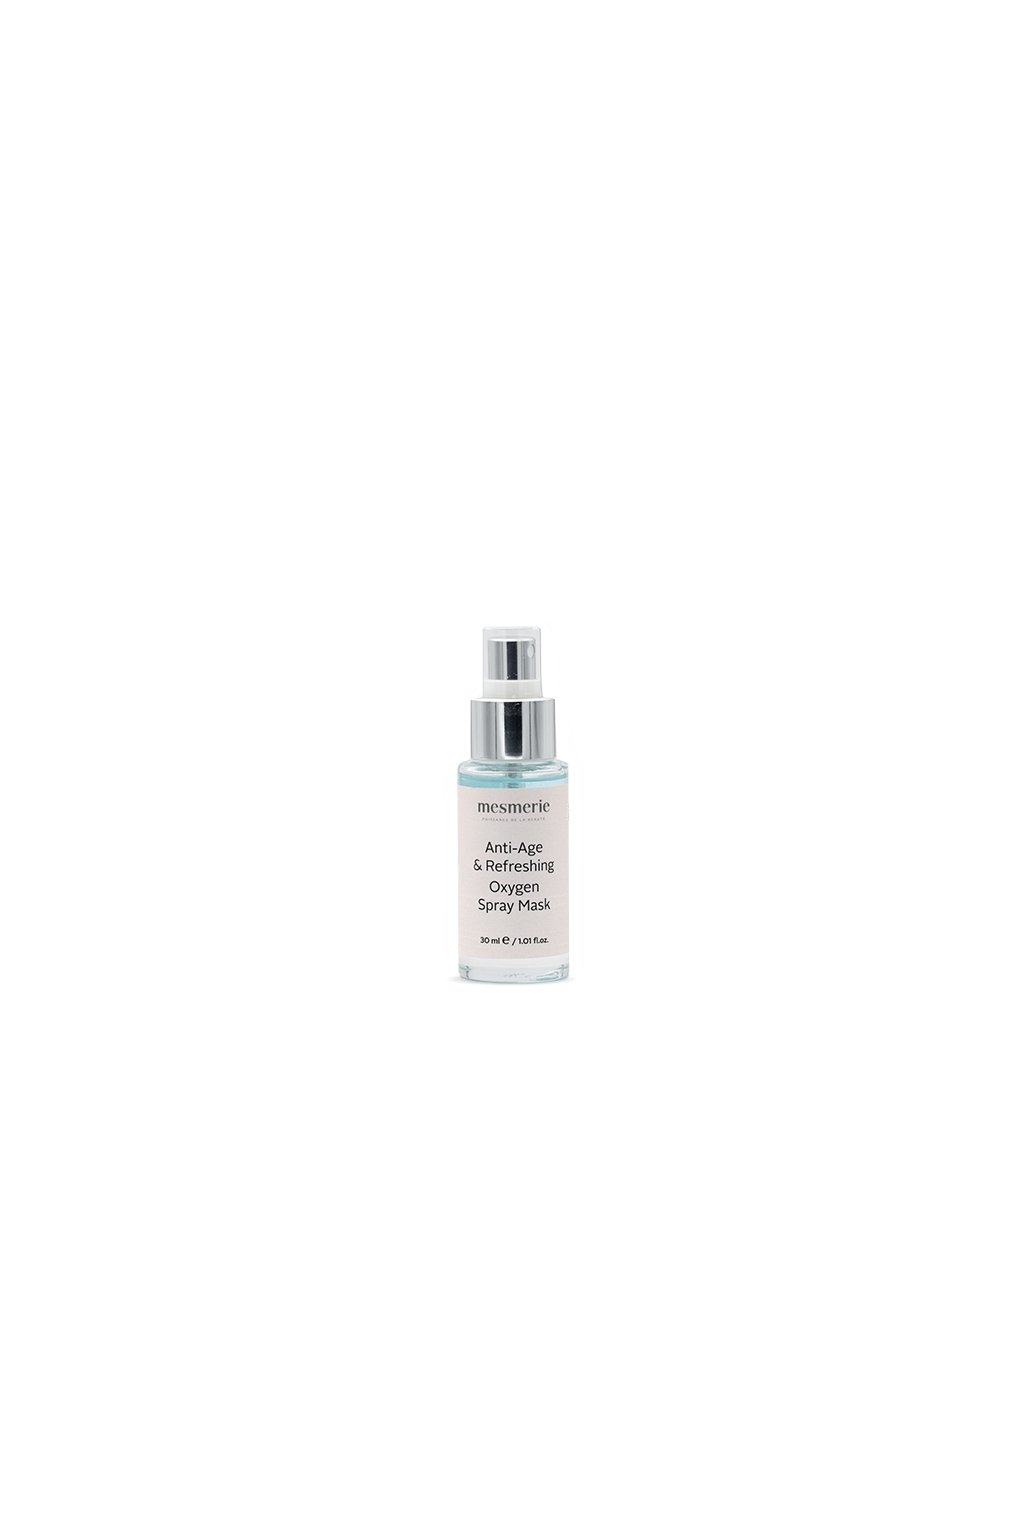 anti age and refreshing oxygen spray mask